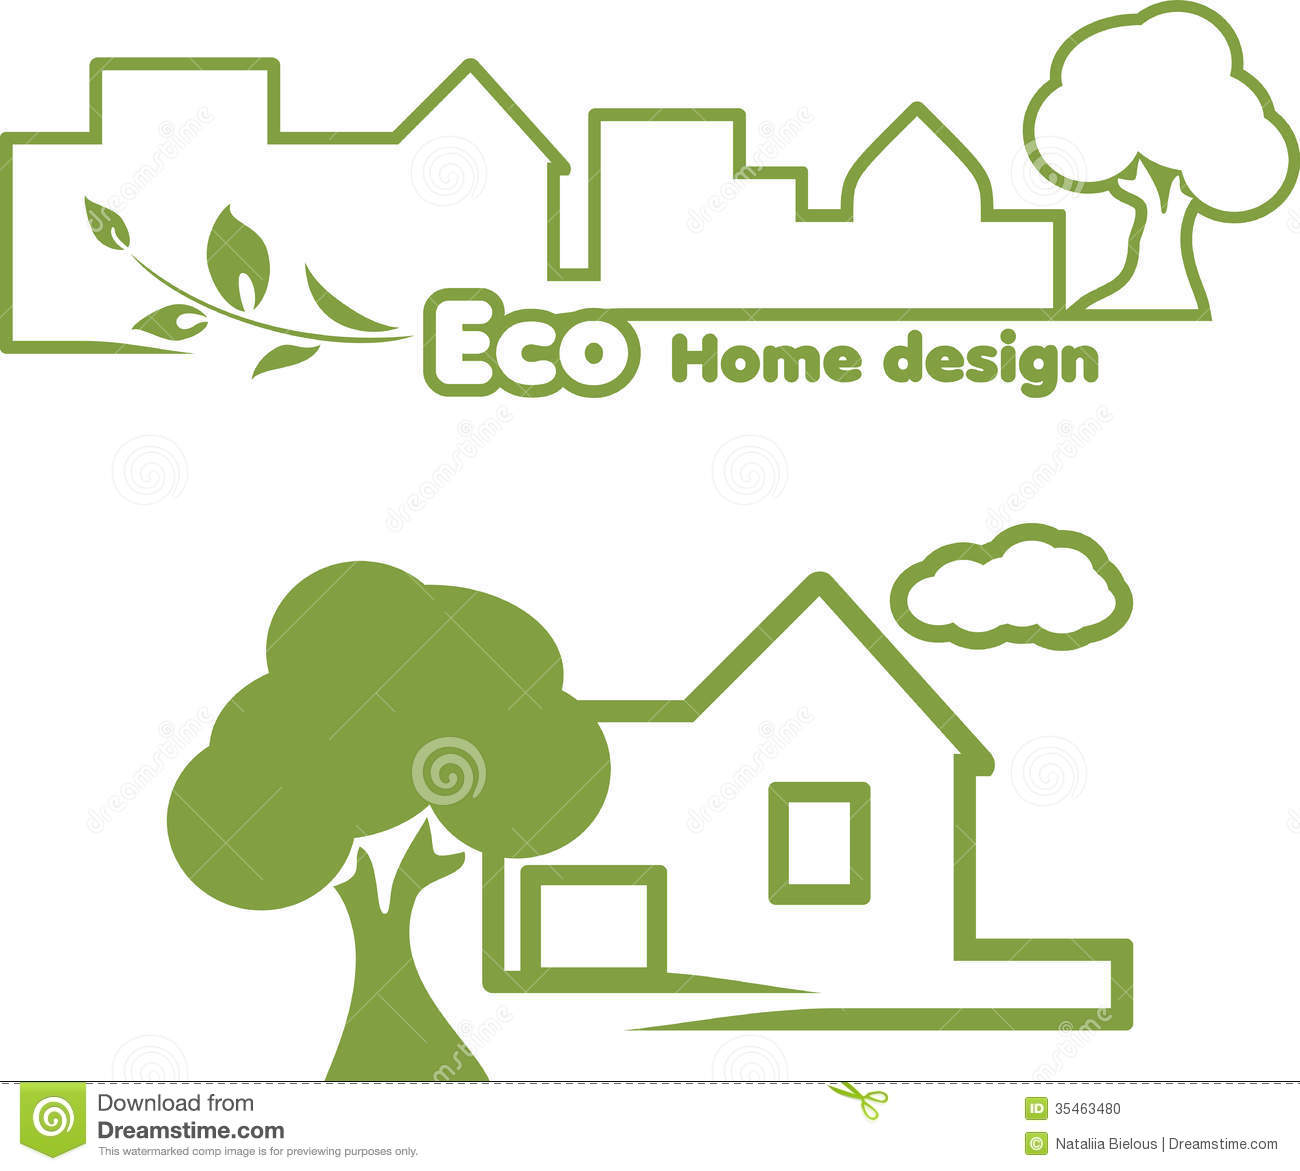 Eco Home Design Icons For Design Stock Photo Image - Eco home design